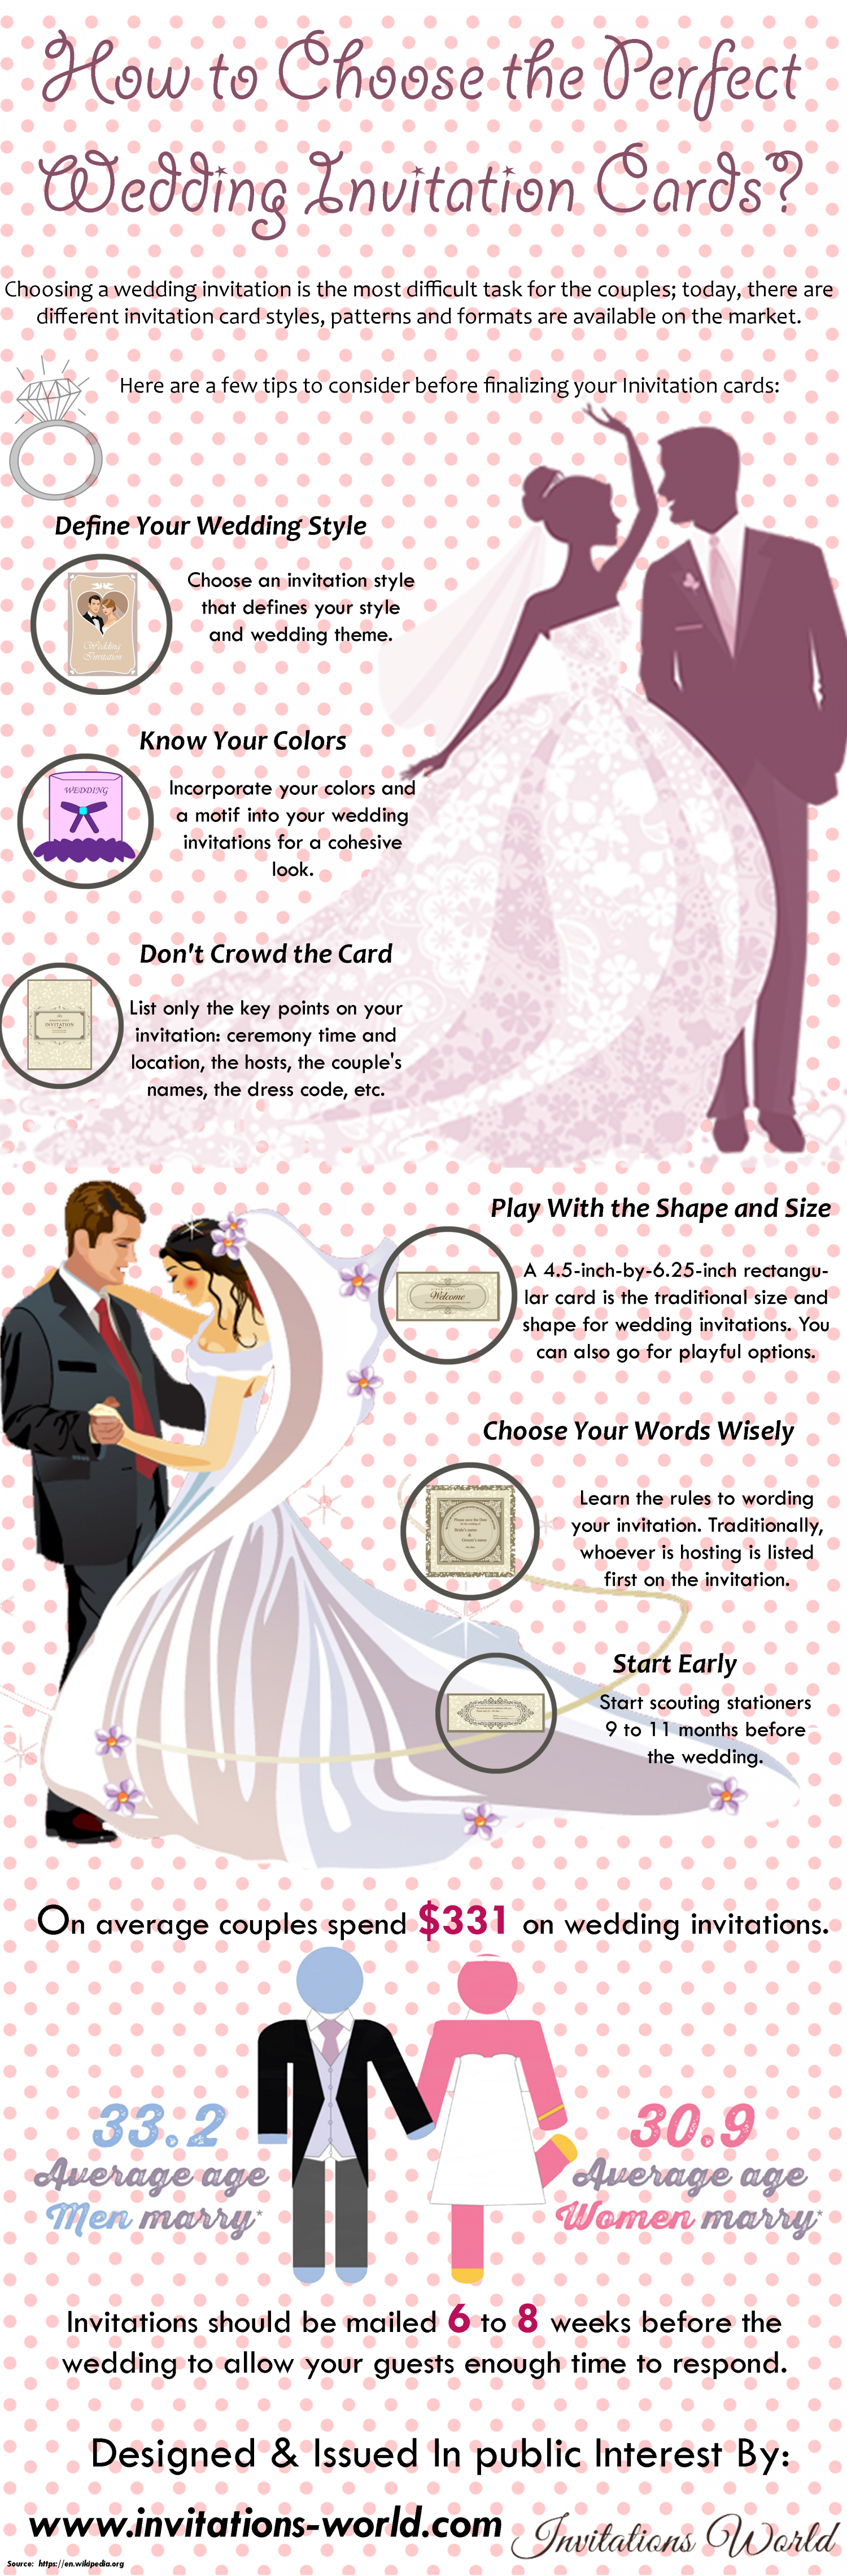 how to choose wedding invitation cards - 28 images - how to choose ...